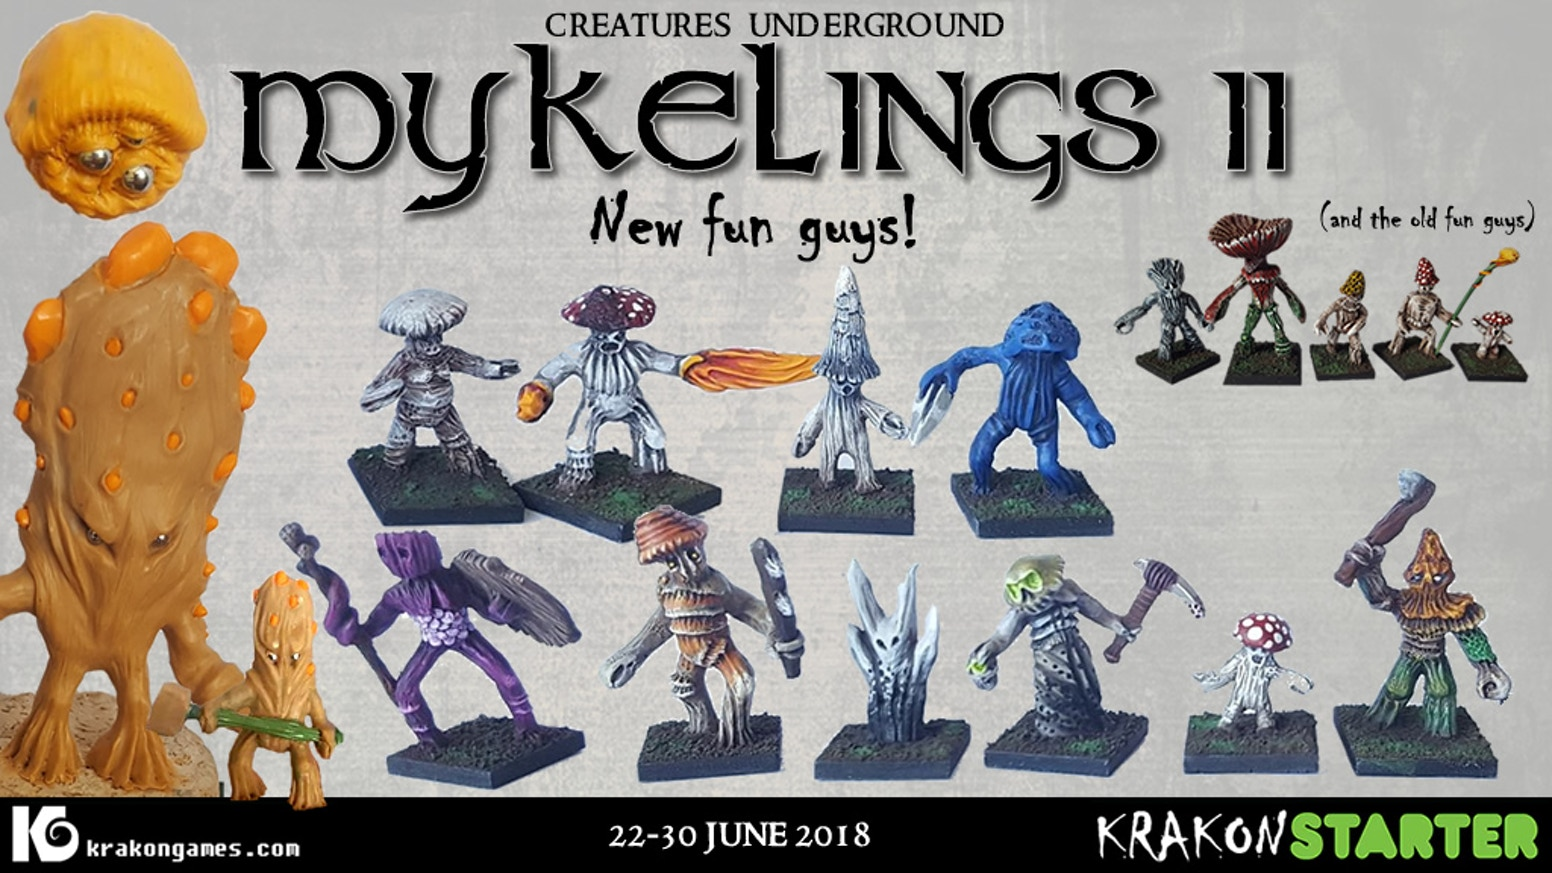 After the success of Mykelings 1, they are back with twice the reinforcements! Lets fund more fug guys.